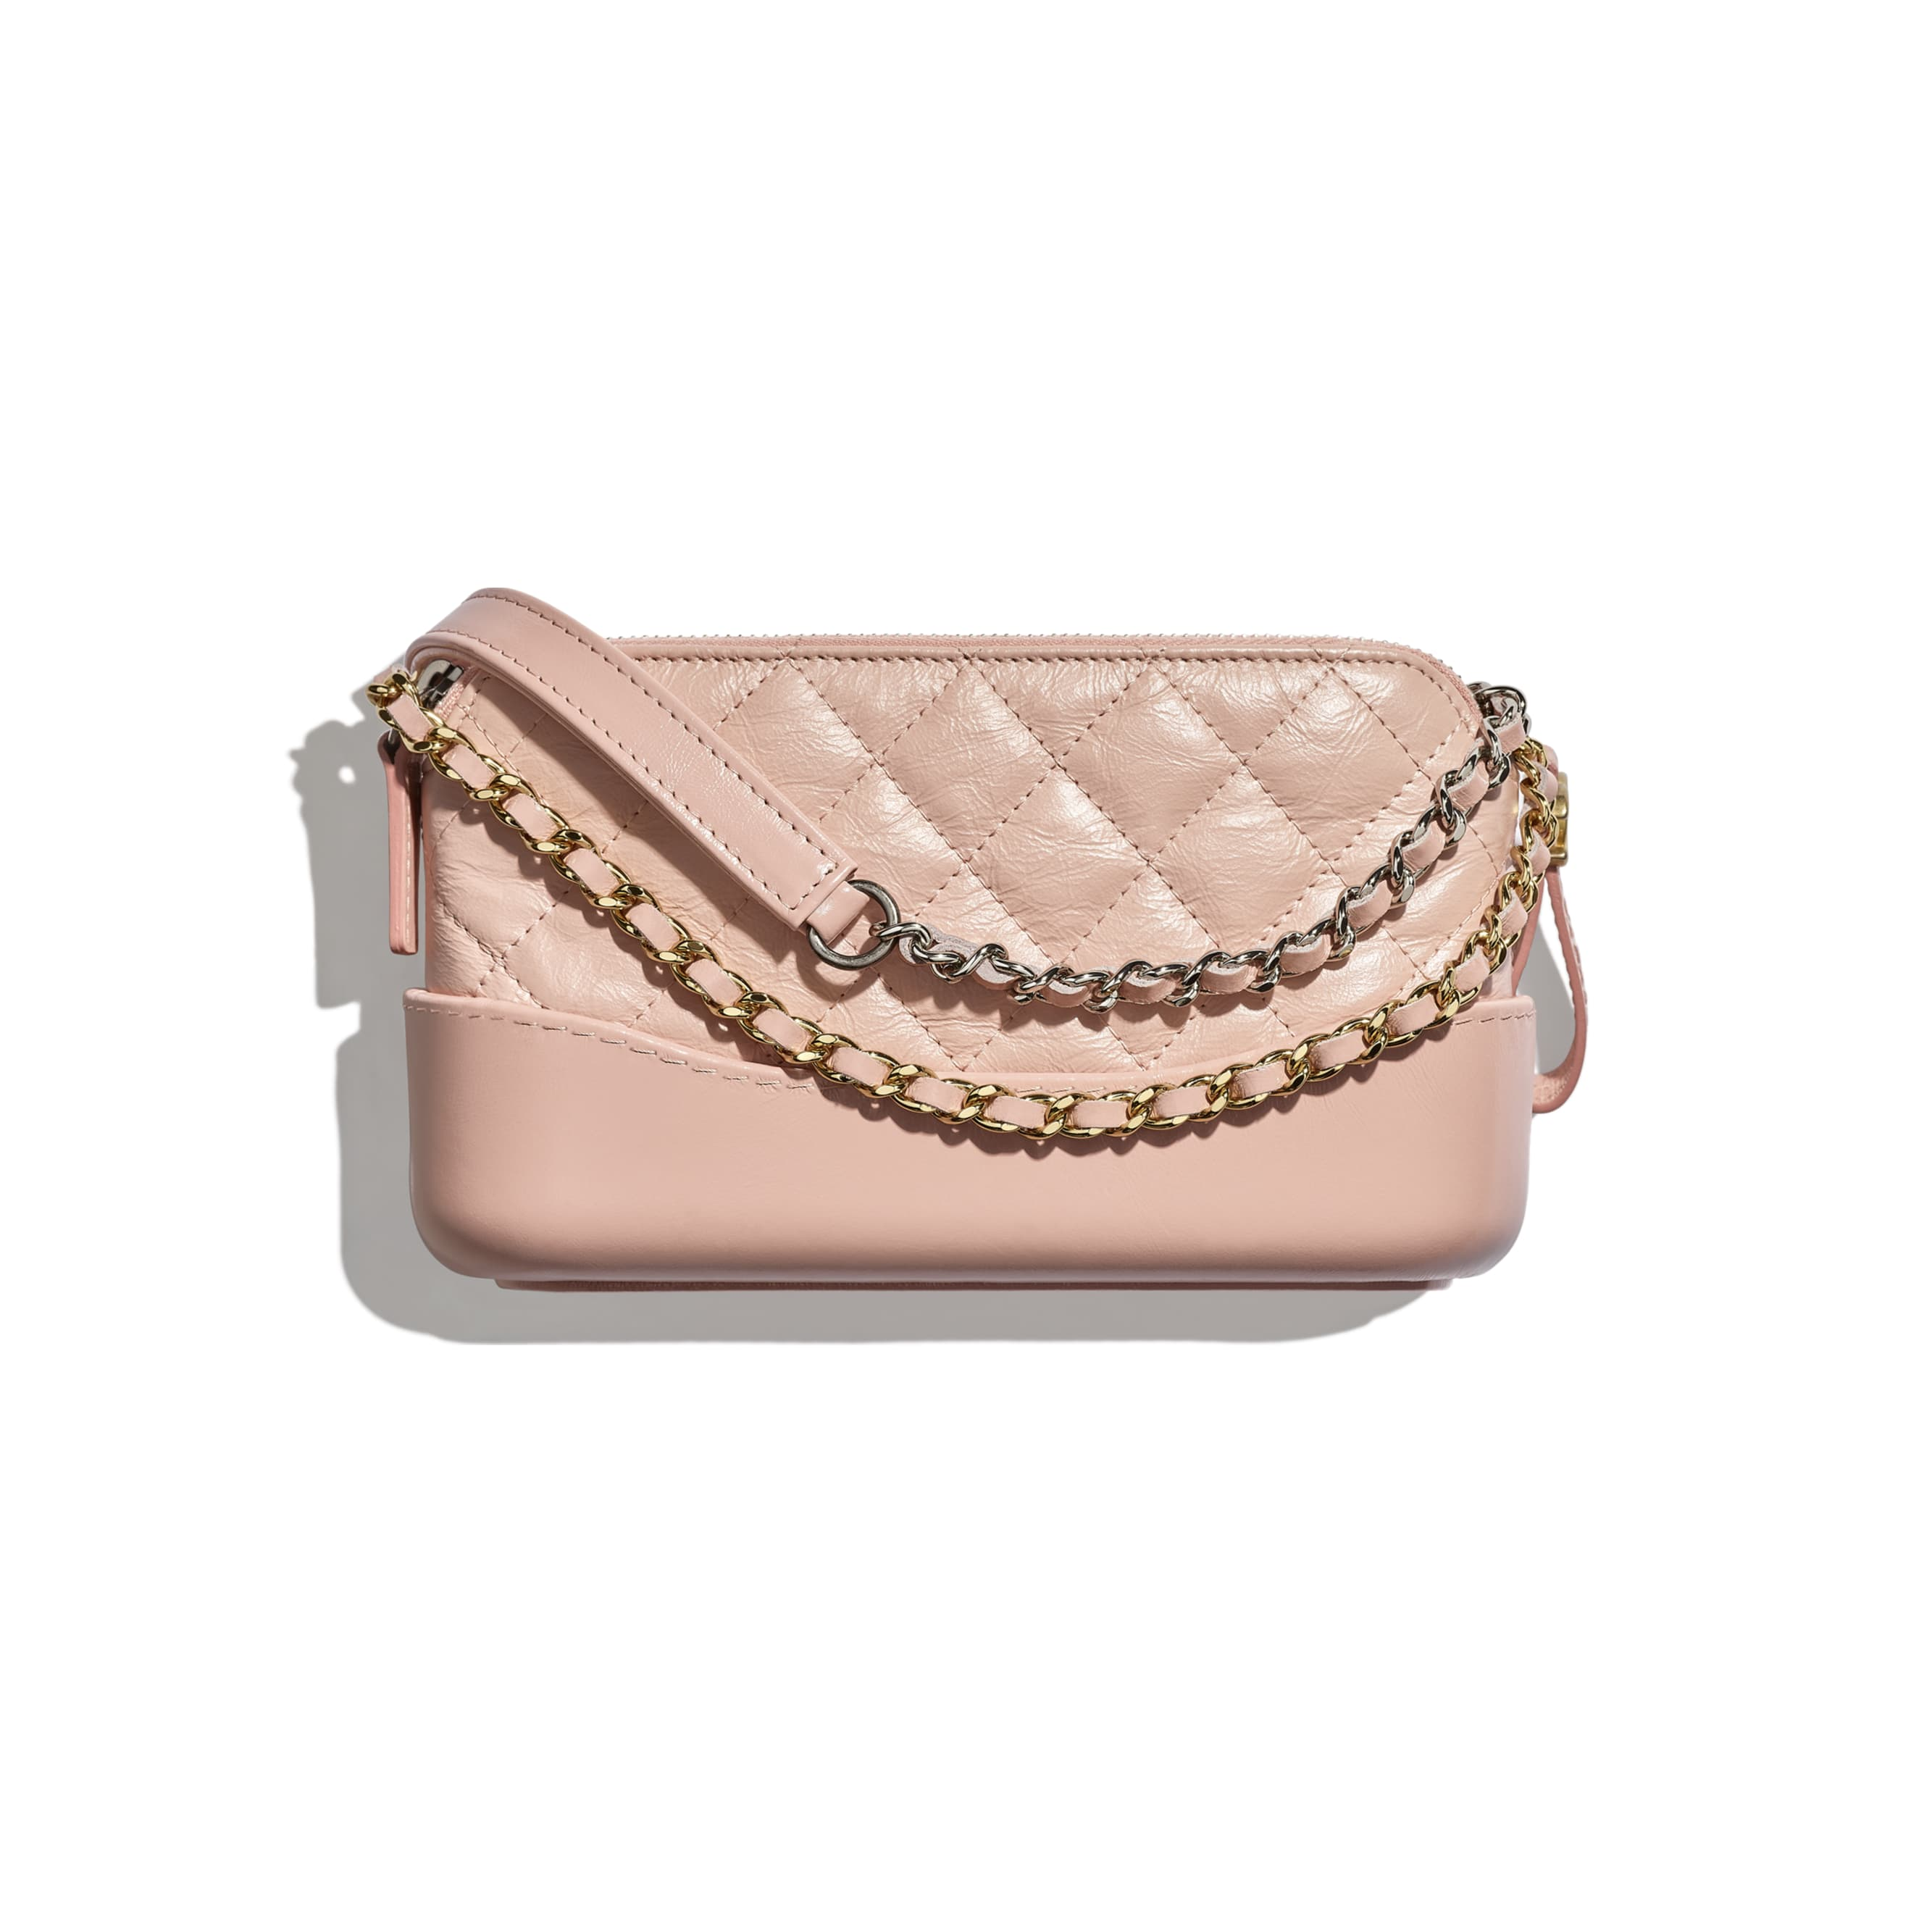 Clutch with Chain - Light Pink - Aged Calfskin, Smooth Calfskin, Gold-Tone, Silver-Tone & Ruthenium-Finish Metal - CHANEL - Alternative view - see standard sized version